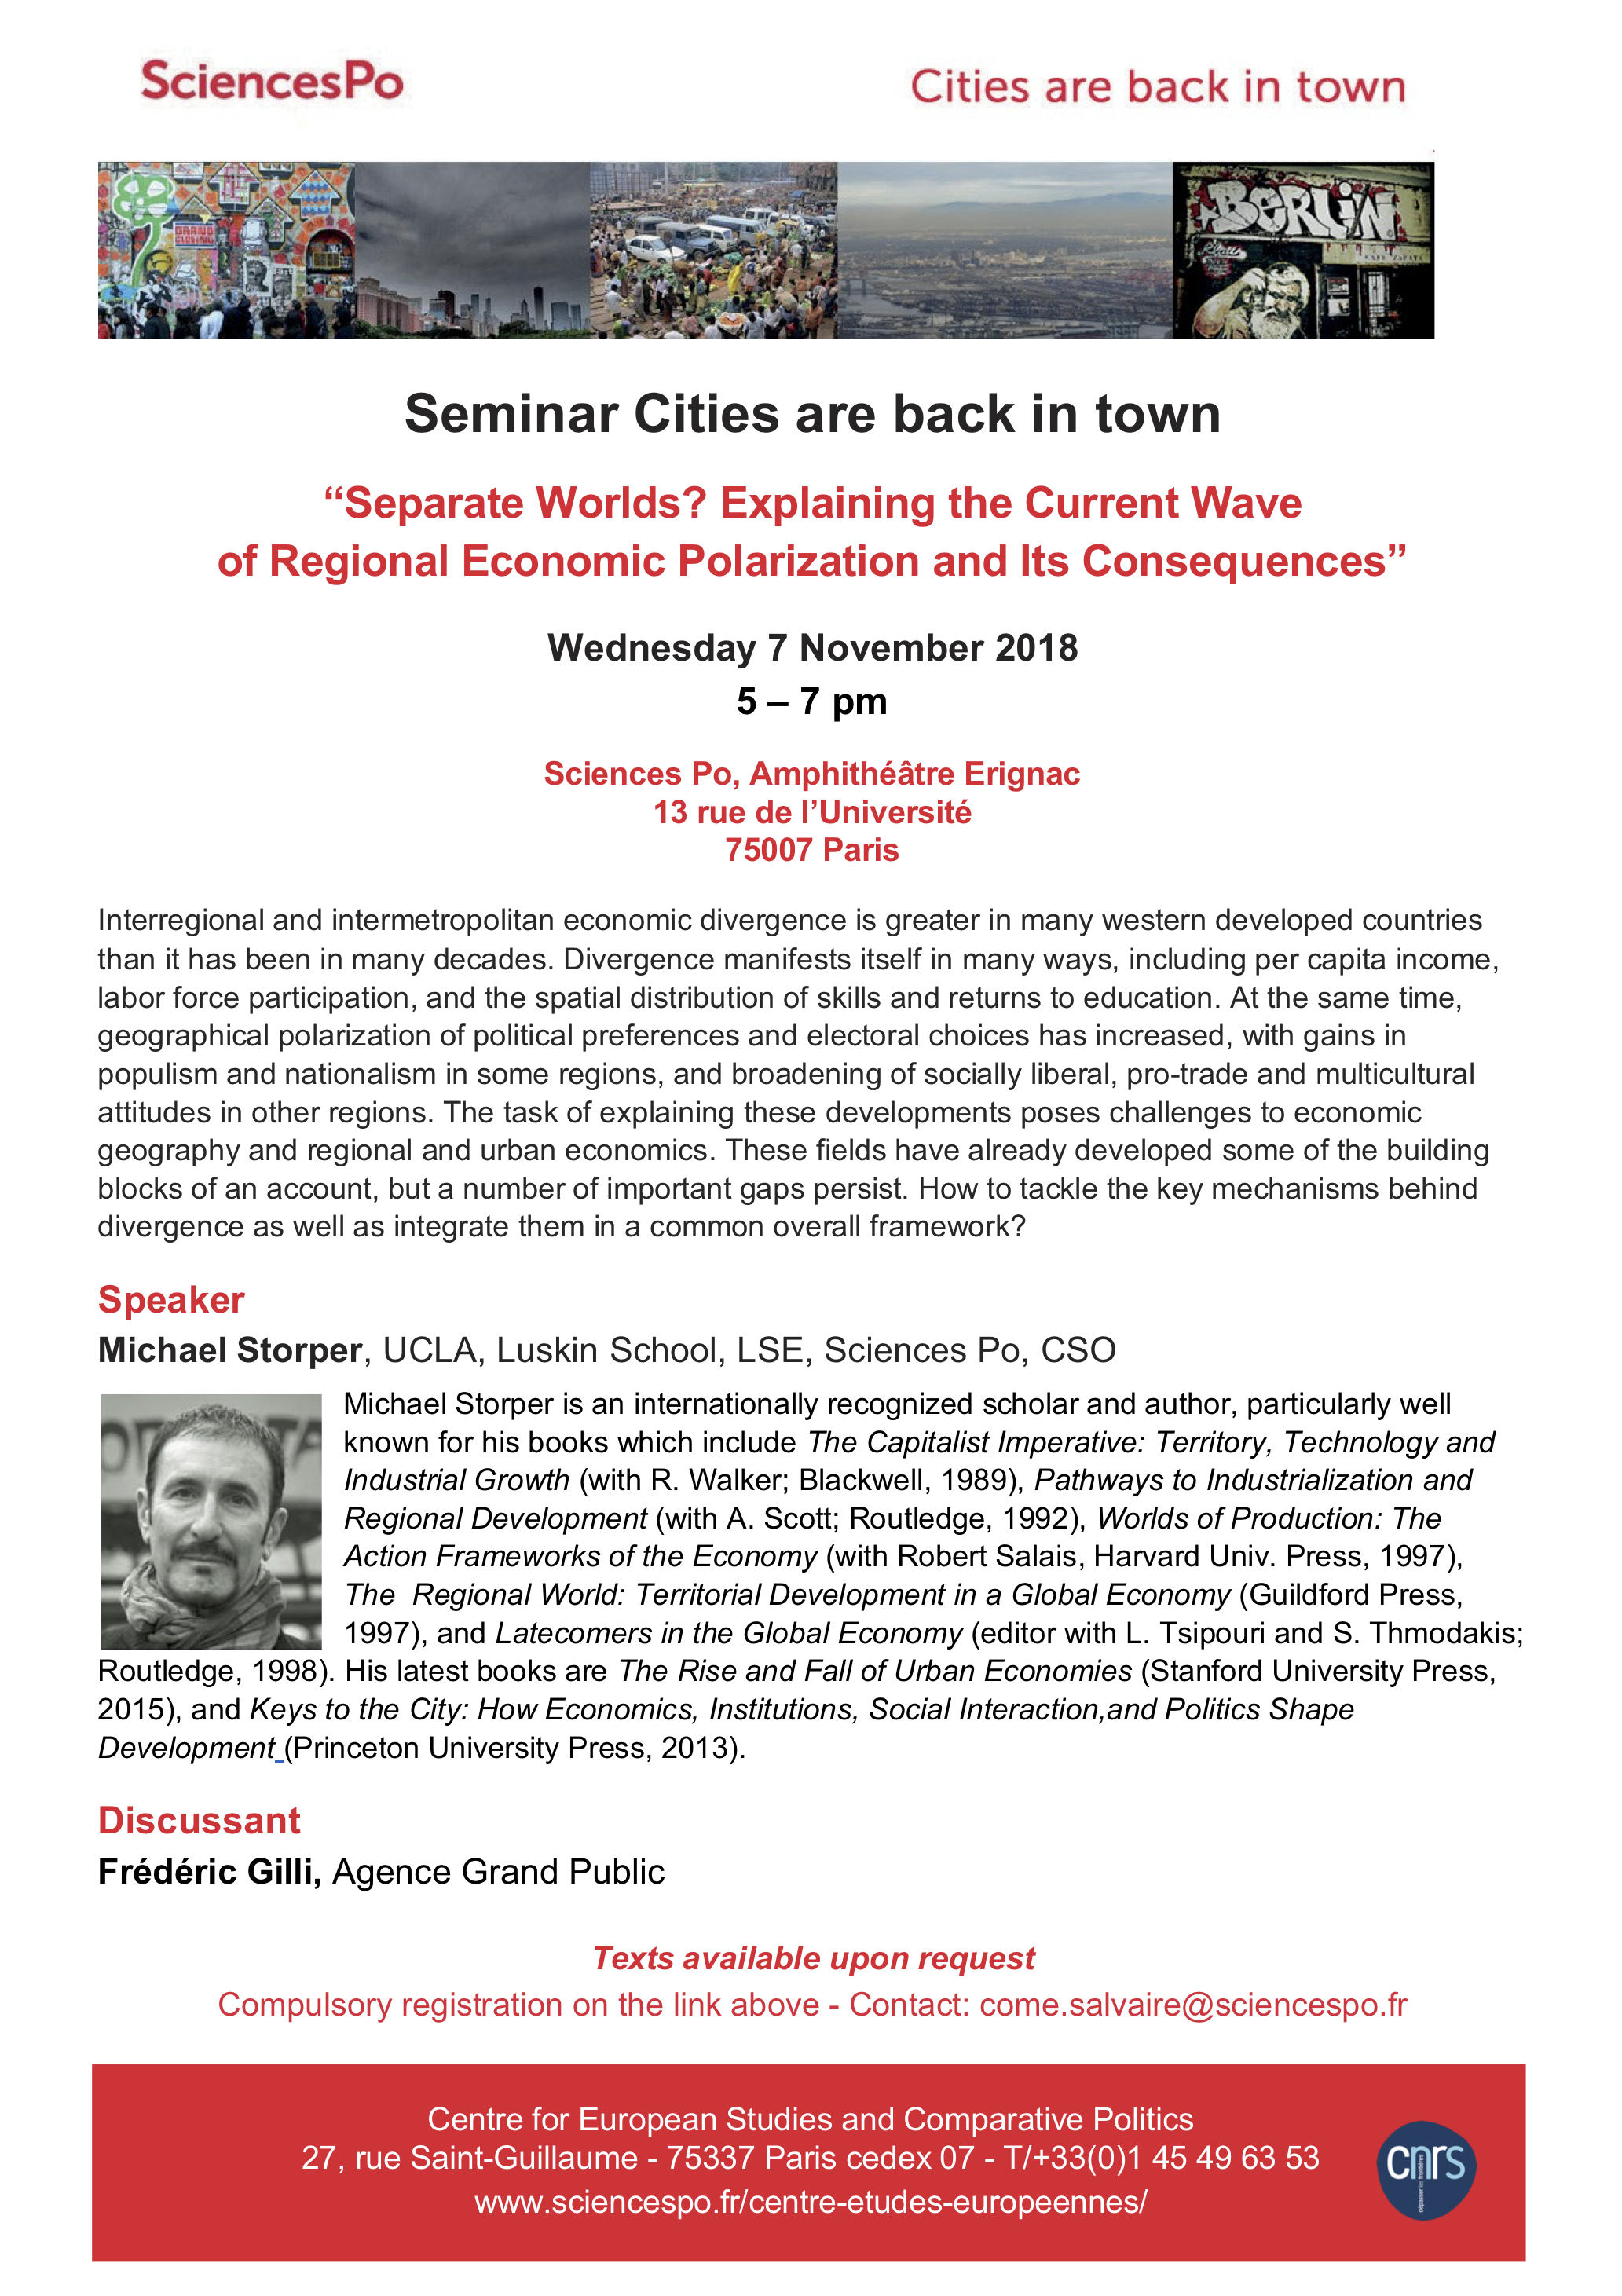 [Séminaire Cities are back in Town] Michael Storper, « Separate Worlds? Explaining the Current Wave of Regional Economic Polarization and Its Consequences », mercredi 7 novembre 2018, 17h-19h